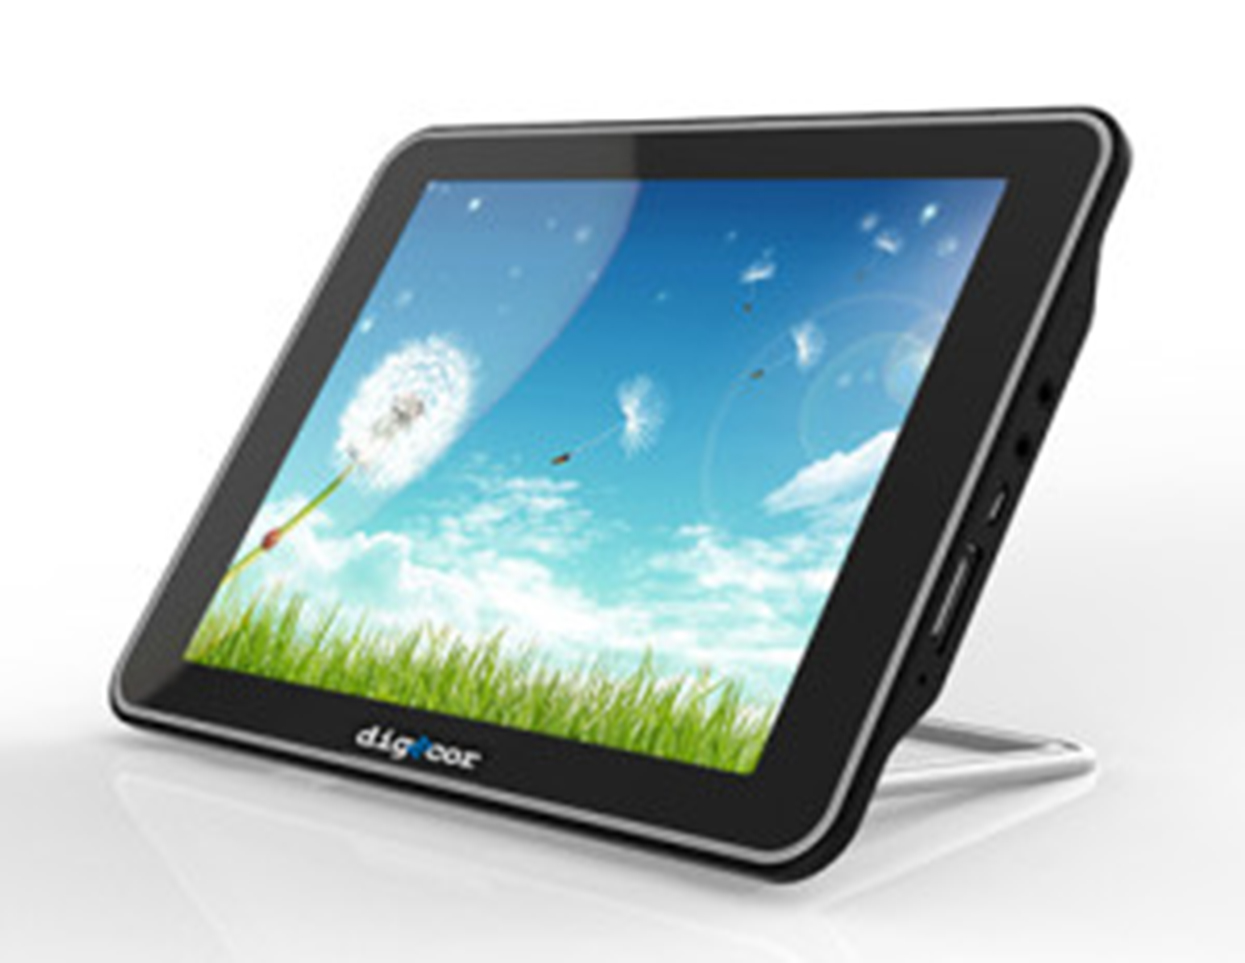 Portable IFE Media Tablets Debut